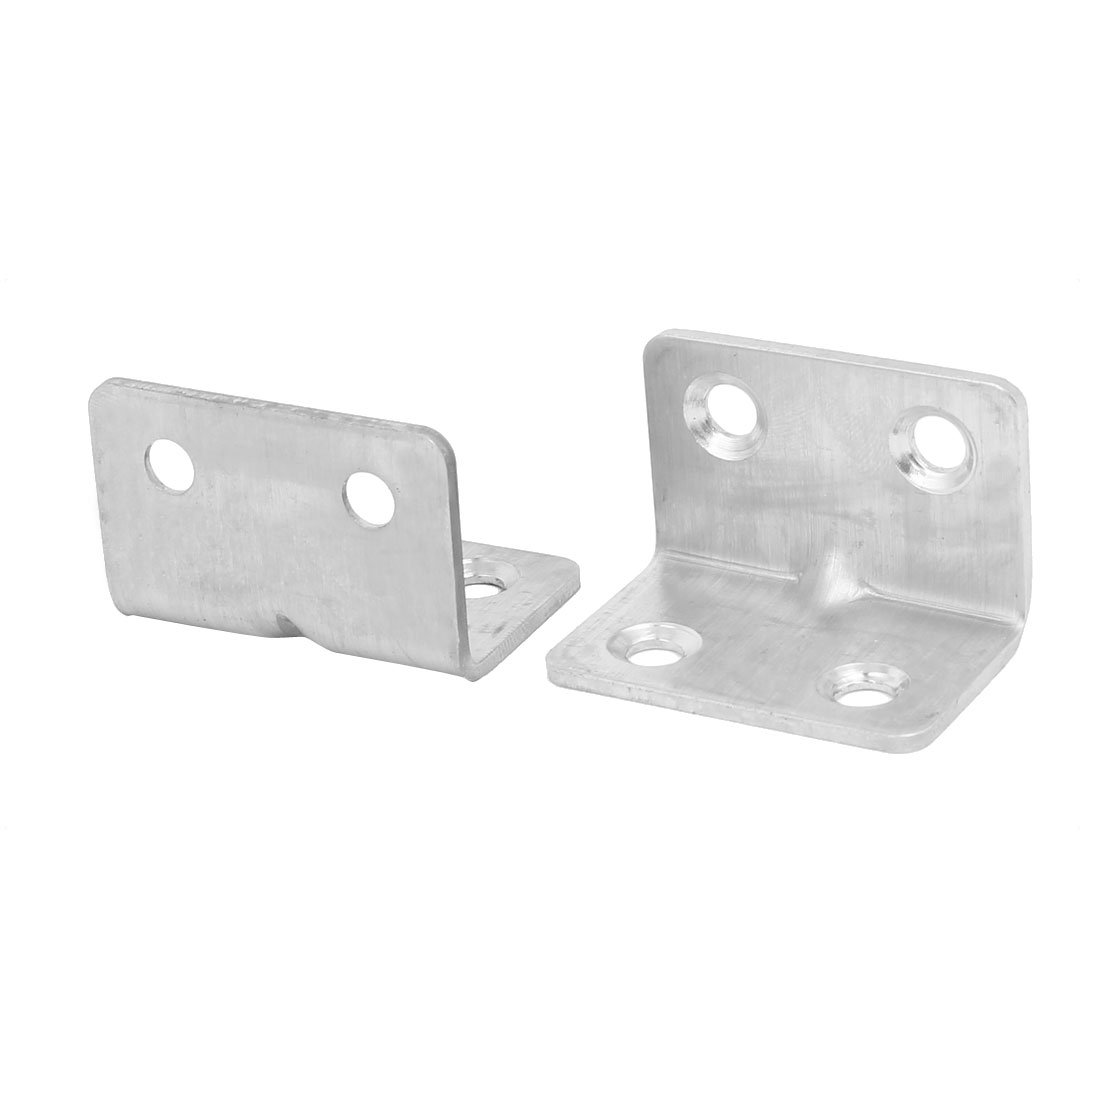 uxcell 25mmx25mmx37mm Stainless Steel Right Angle Bracket Corner Brace Fastener 50pcs by uxcell (Image #2)